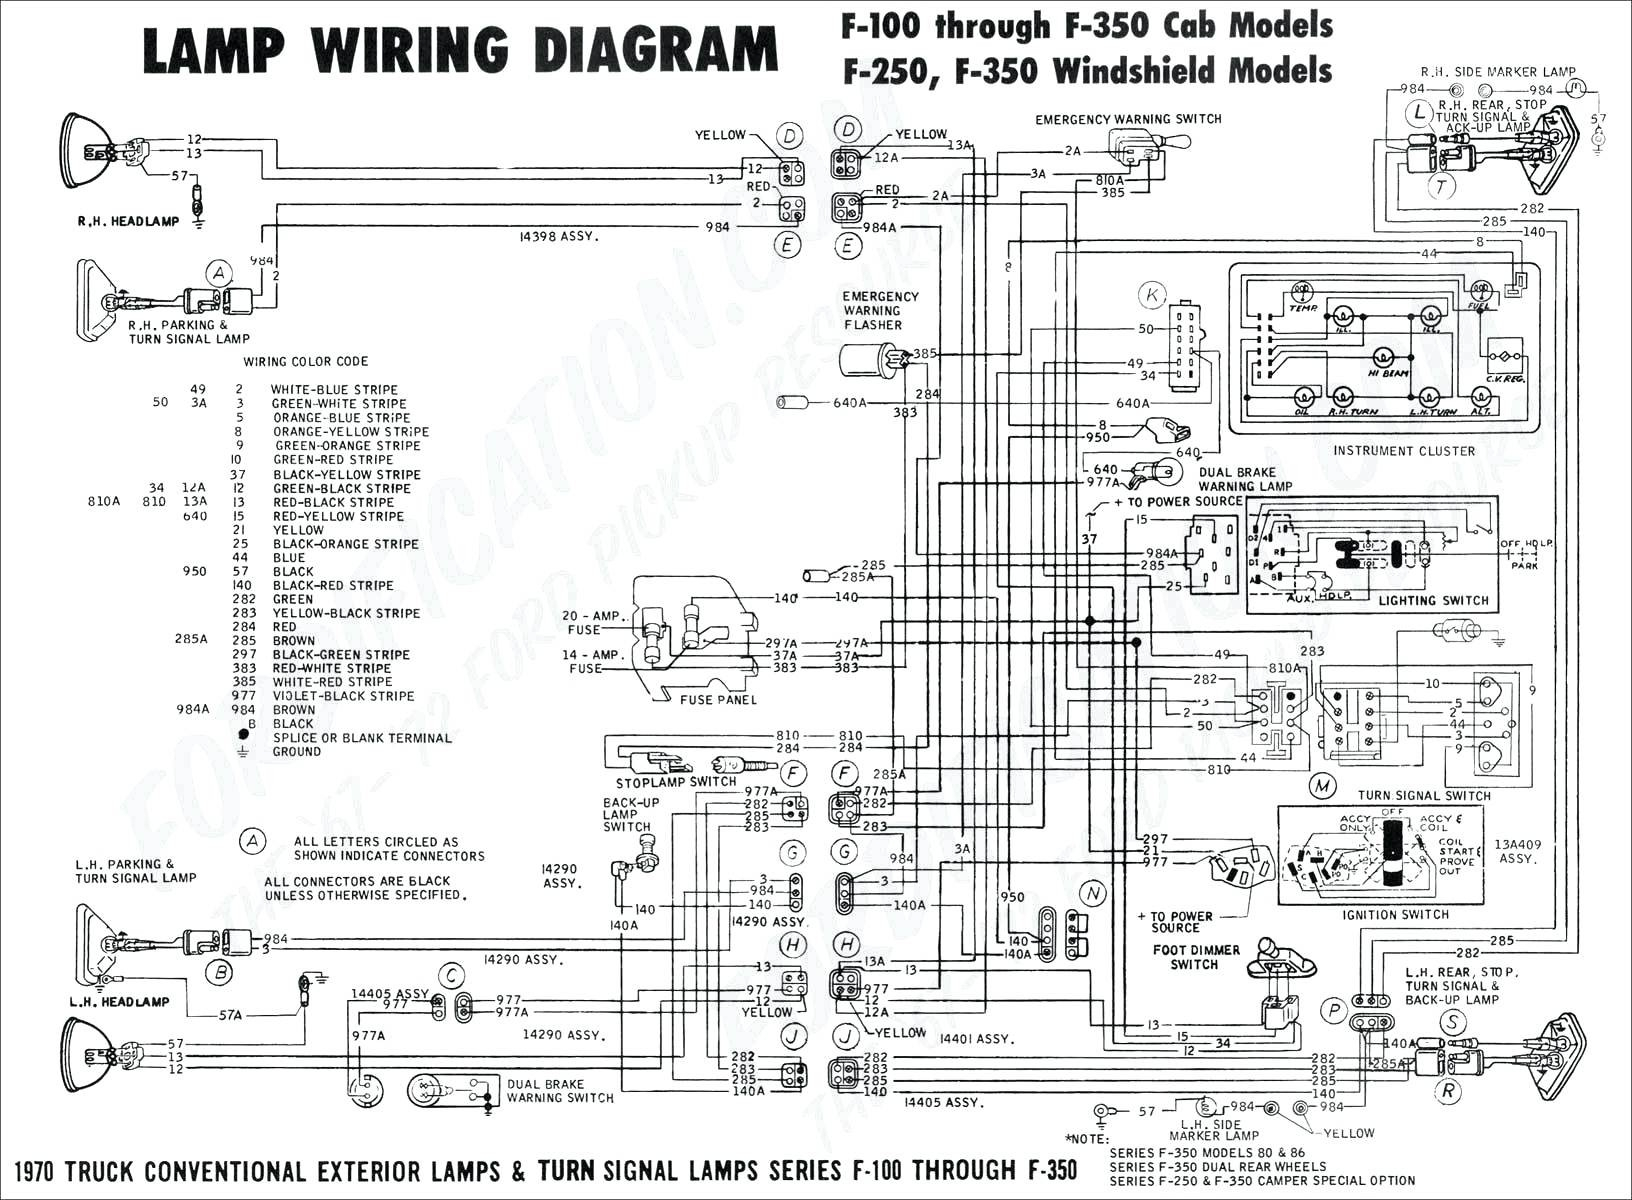 1992 Ford F 250 Obd Ii Diagram - Wiring Diagram & Cable ... Obd Wiring Diagram Impala on